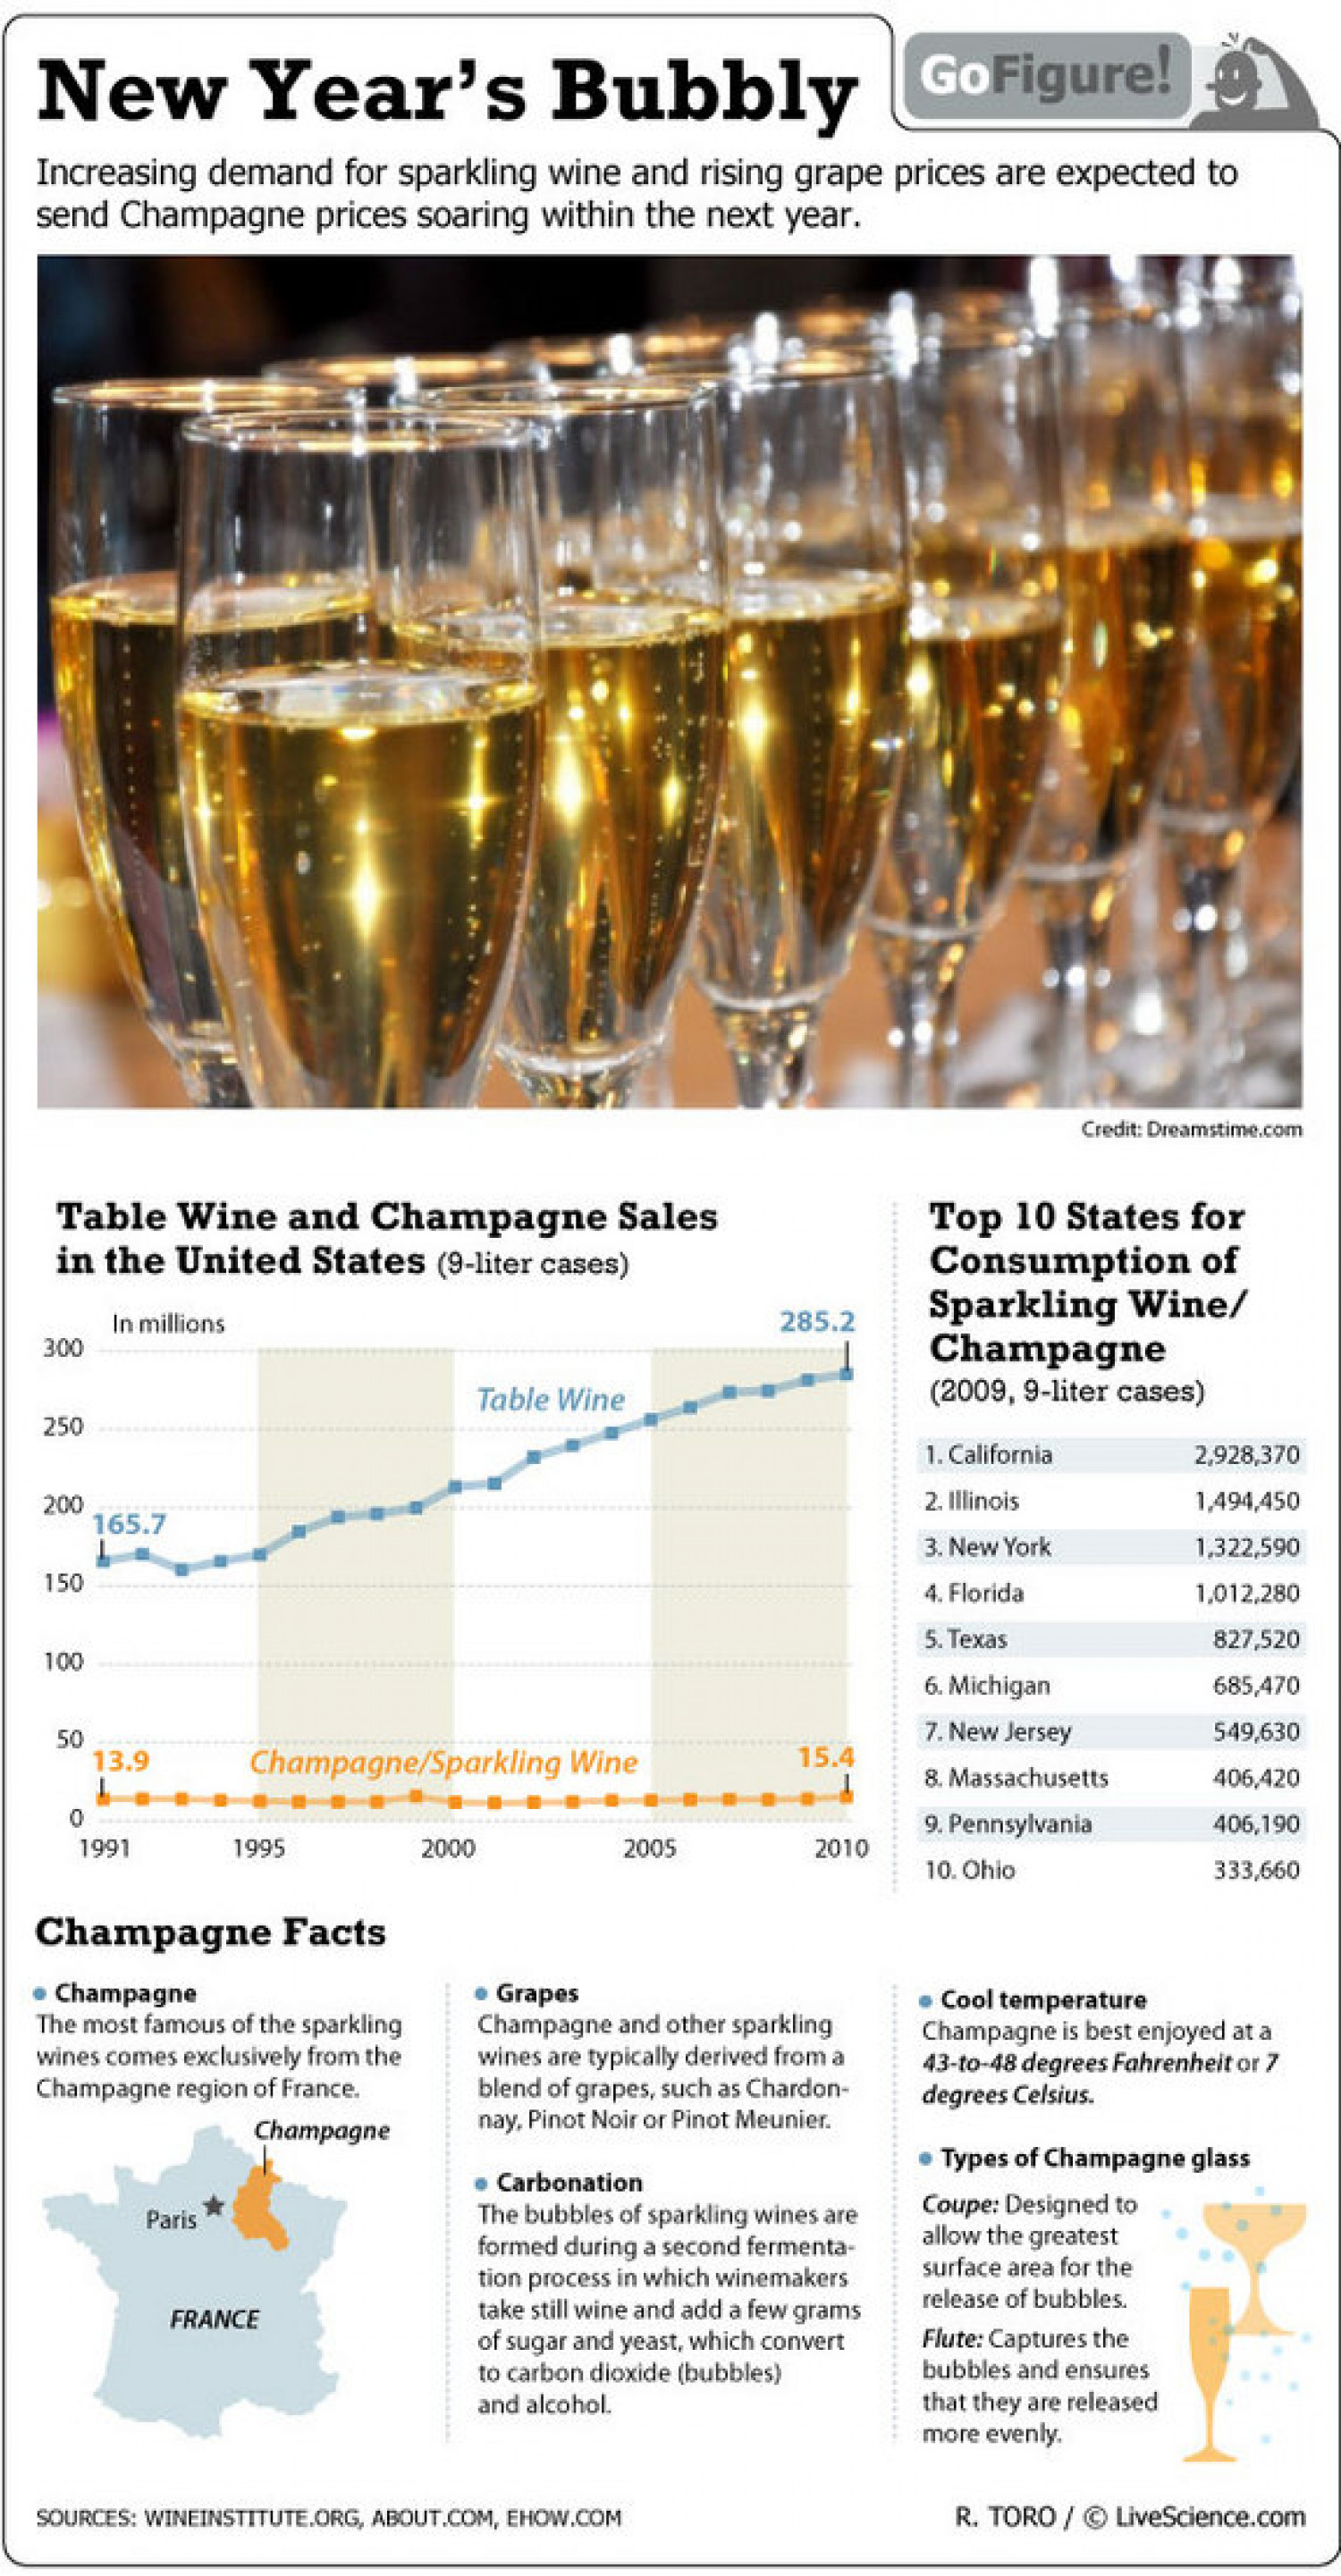 New Year's Bubbly Infographic